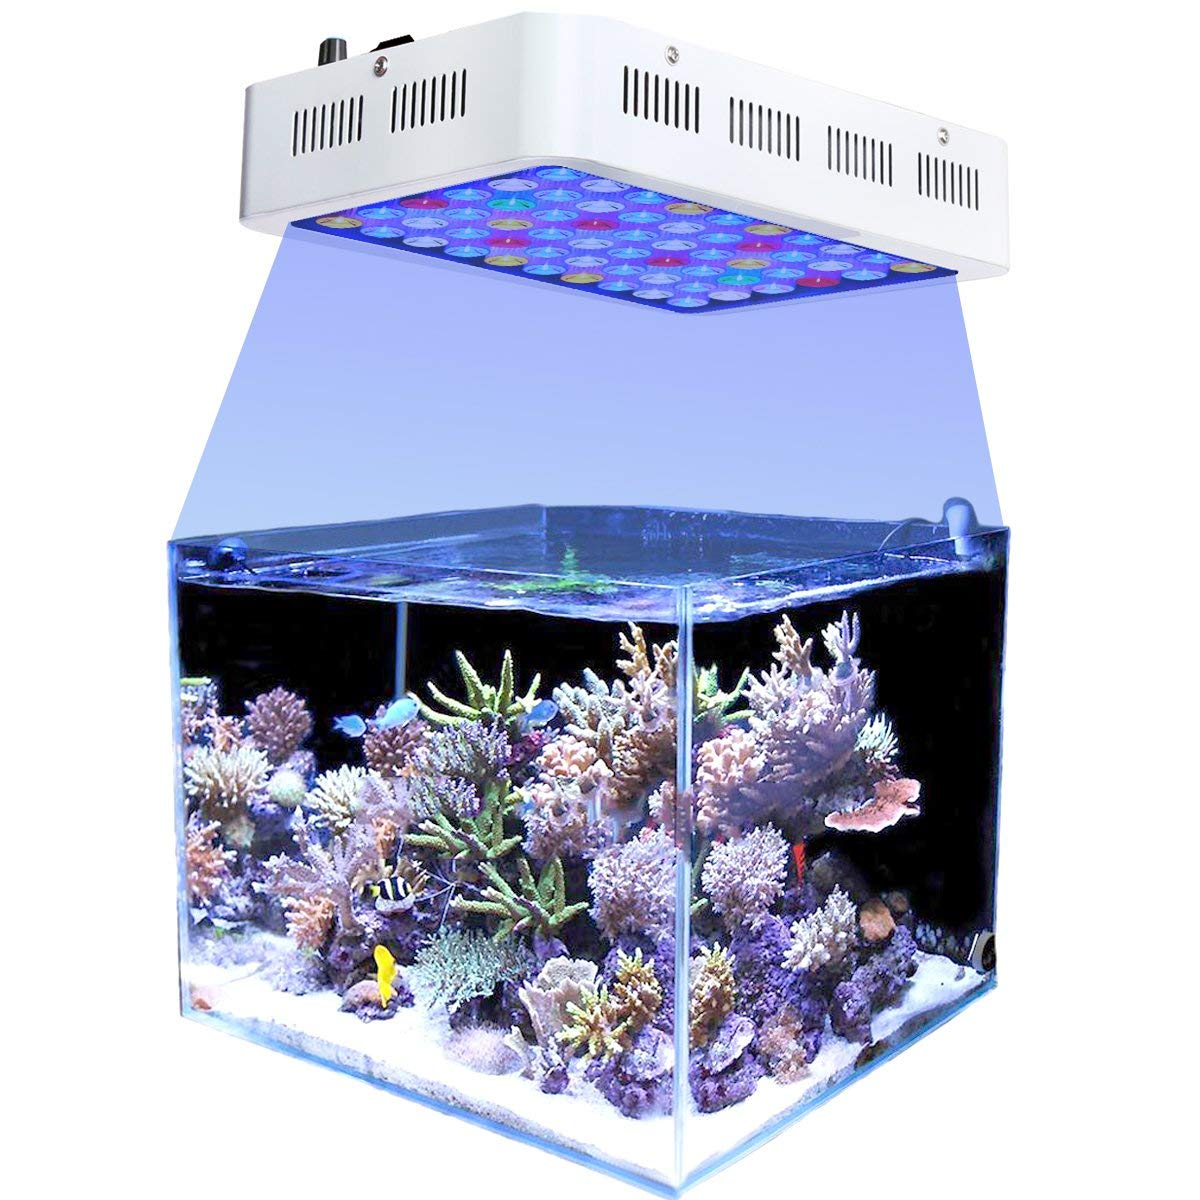 Led Licht Für Nano Aquarium Cheap Nano Reef Led Lighting Find Nano Reef Led Lighting Deals On